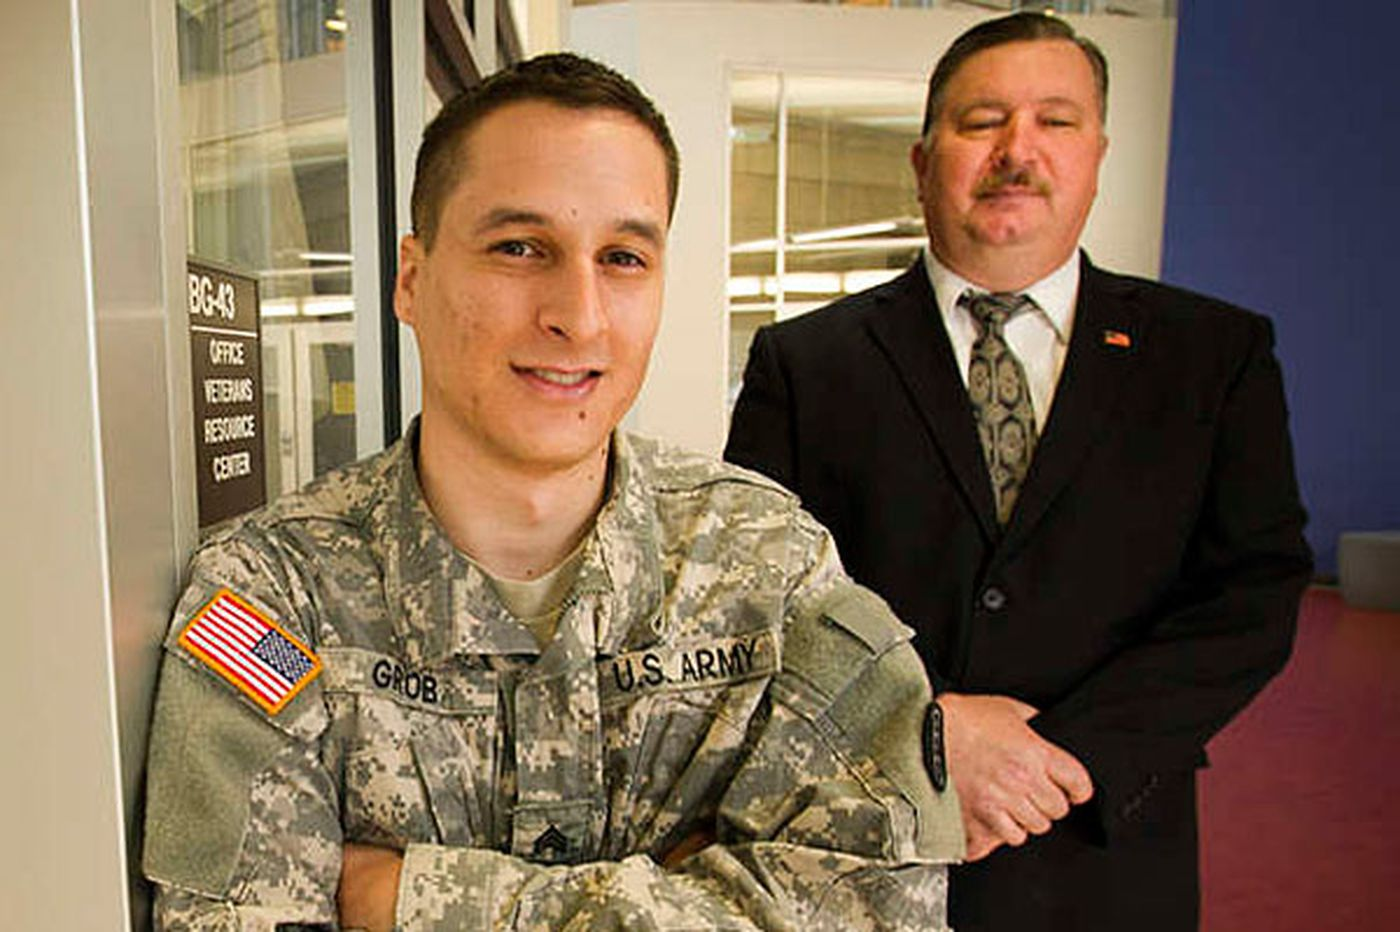 Military vets find friendships, future at Community College of Philadelphia